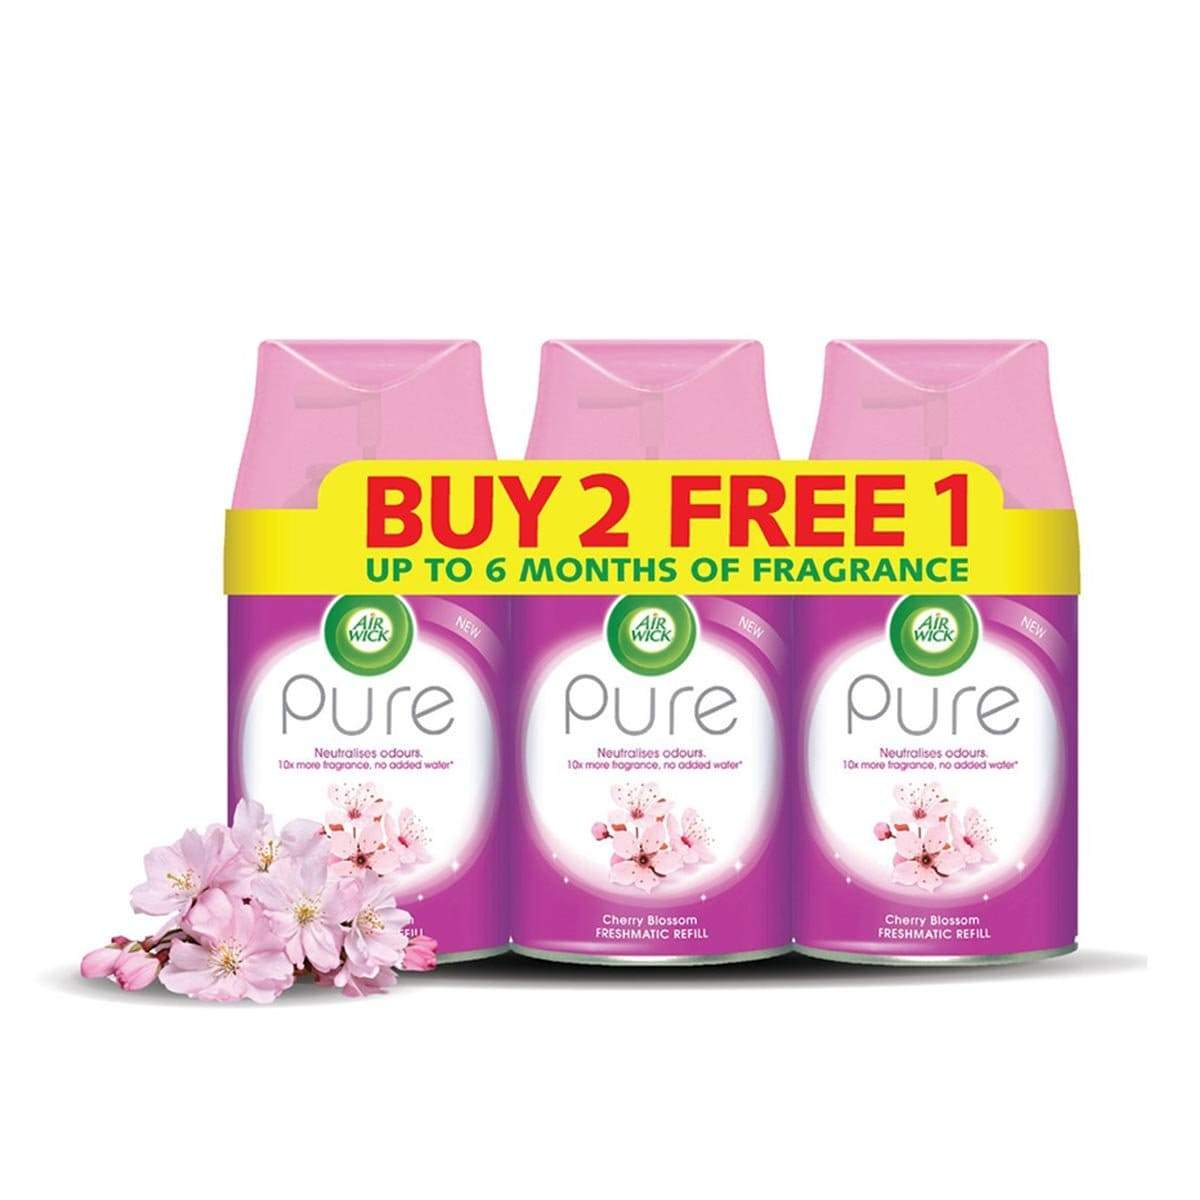 Air Wick Pure Freshmatic Refill (250ml) [Value Pack]-Cherry Blossom